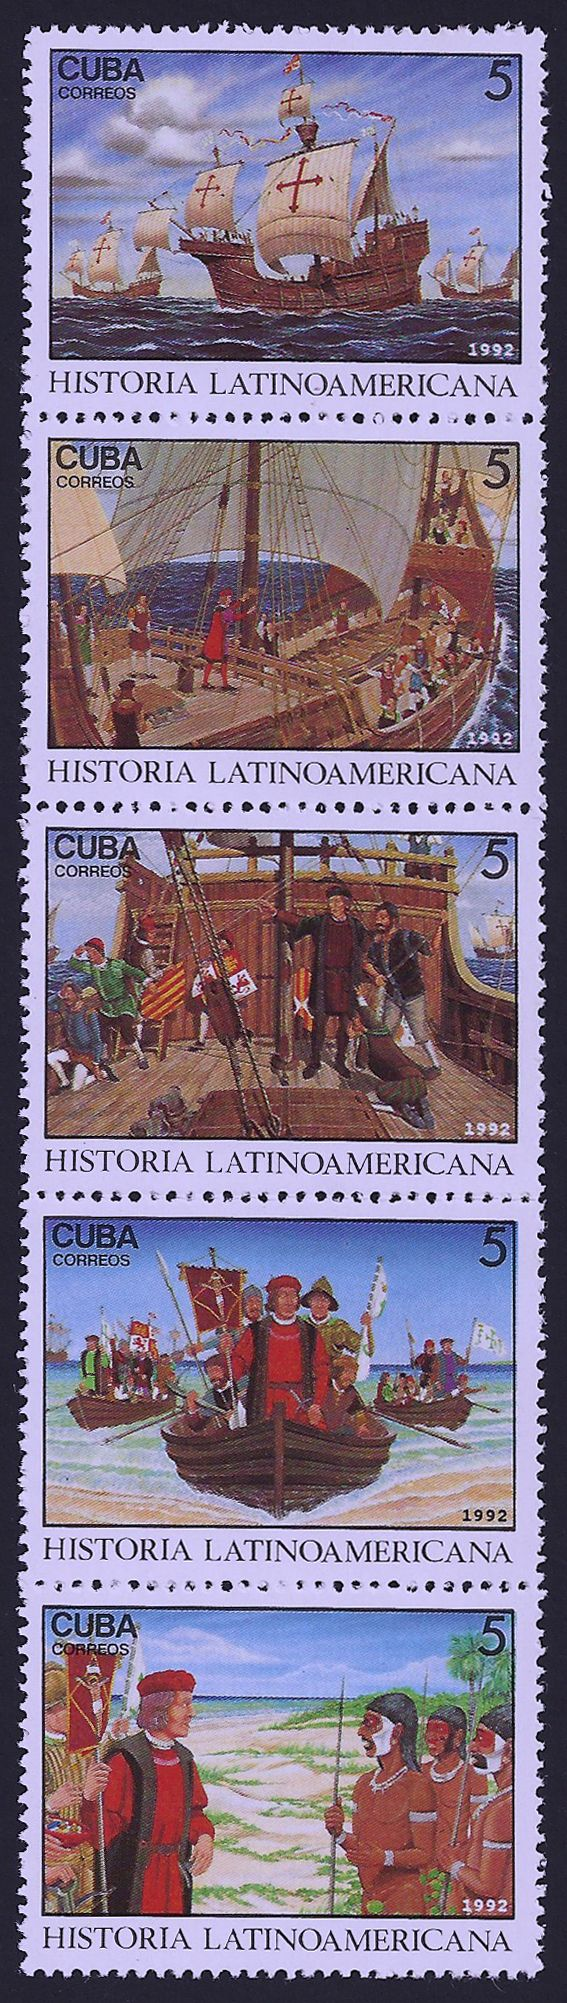 Cuba Scott #3464 a-e (3 Oct 1992) Strip of 5, a. Three ships stopping at Canary Islands, b. Columbus speaking to crew, c. Land sighted, Oct. 12, 1492, d. Columbus landing in New World, e. Meeting natives.